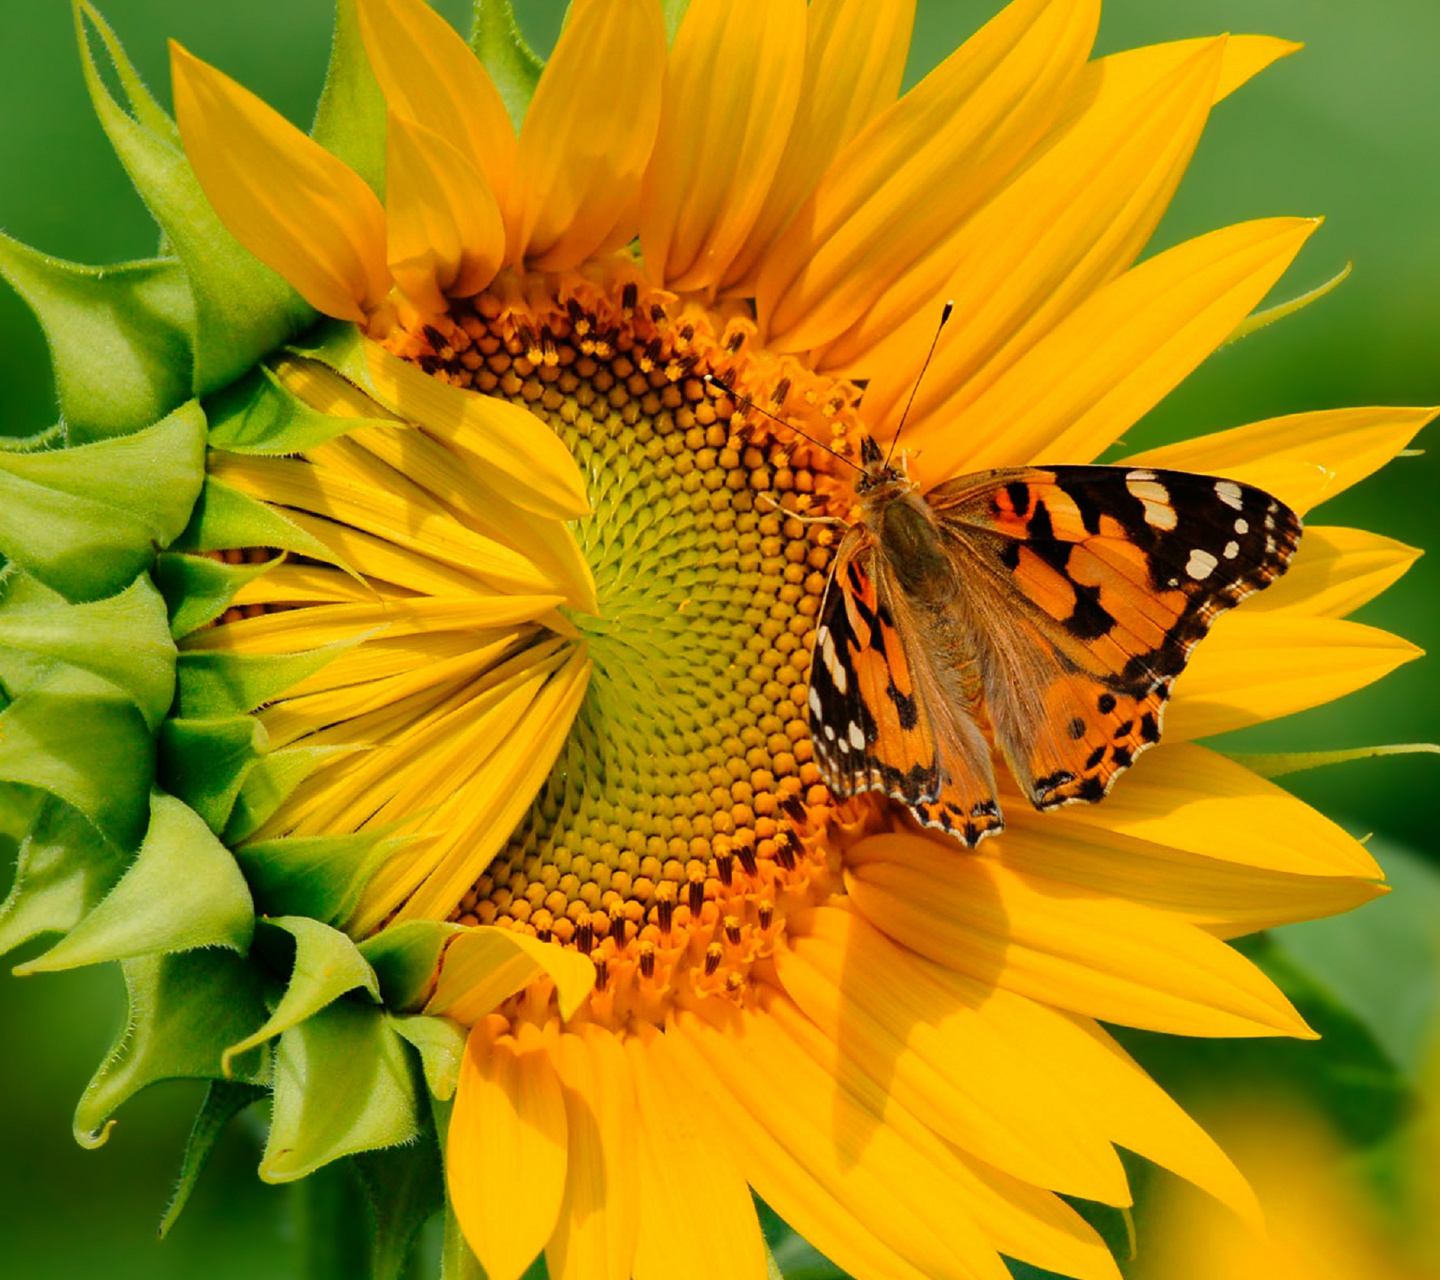 21659 download wallpaper Plants, Butterflies, Flowers, Insects, Sunflowers screensavers and pictures for free